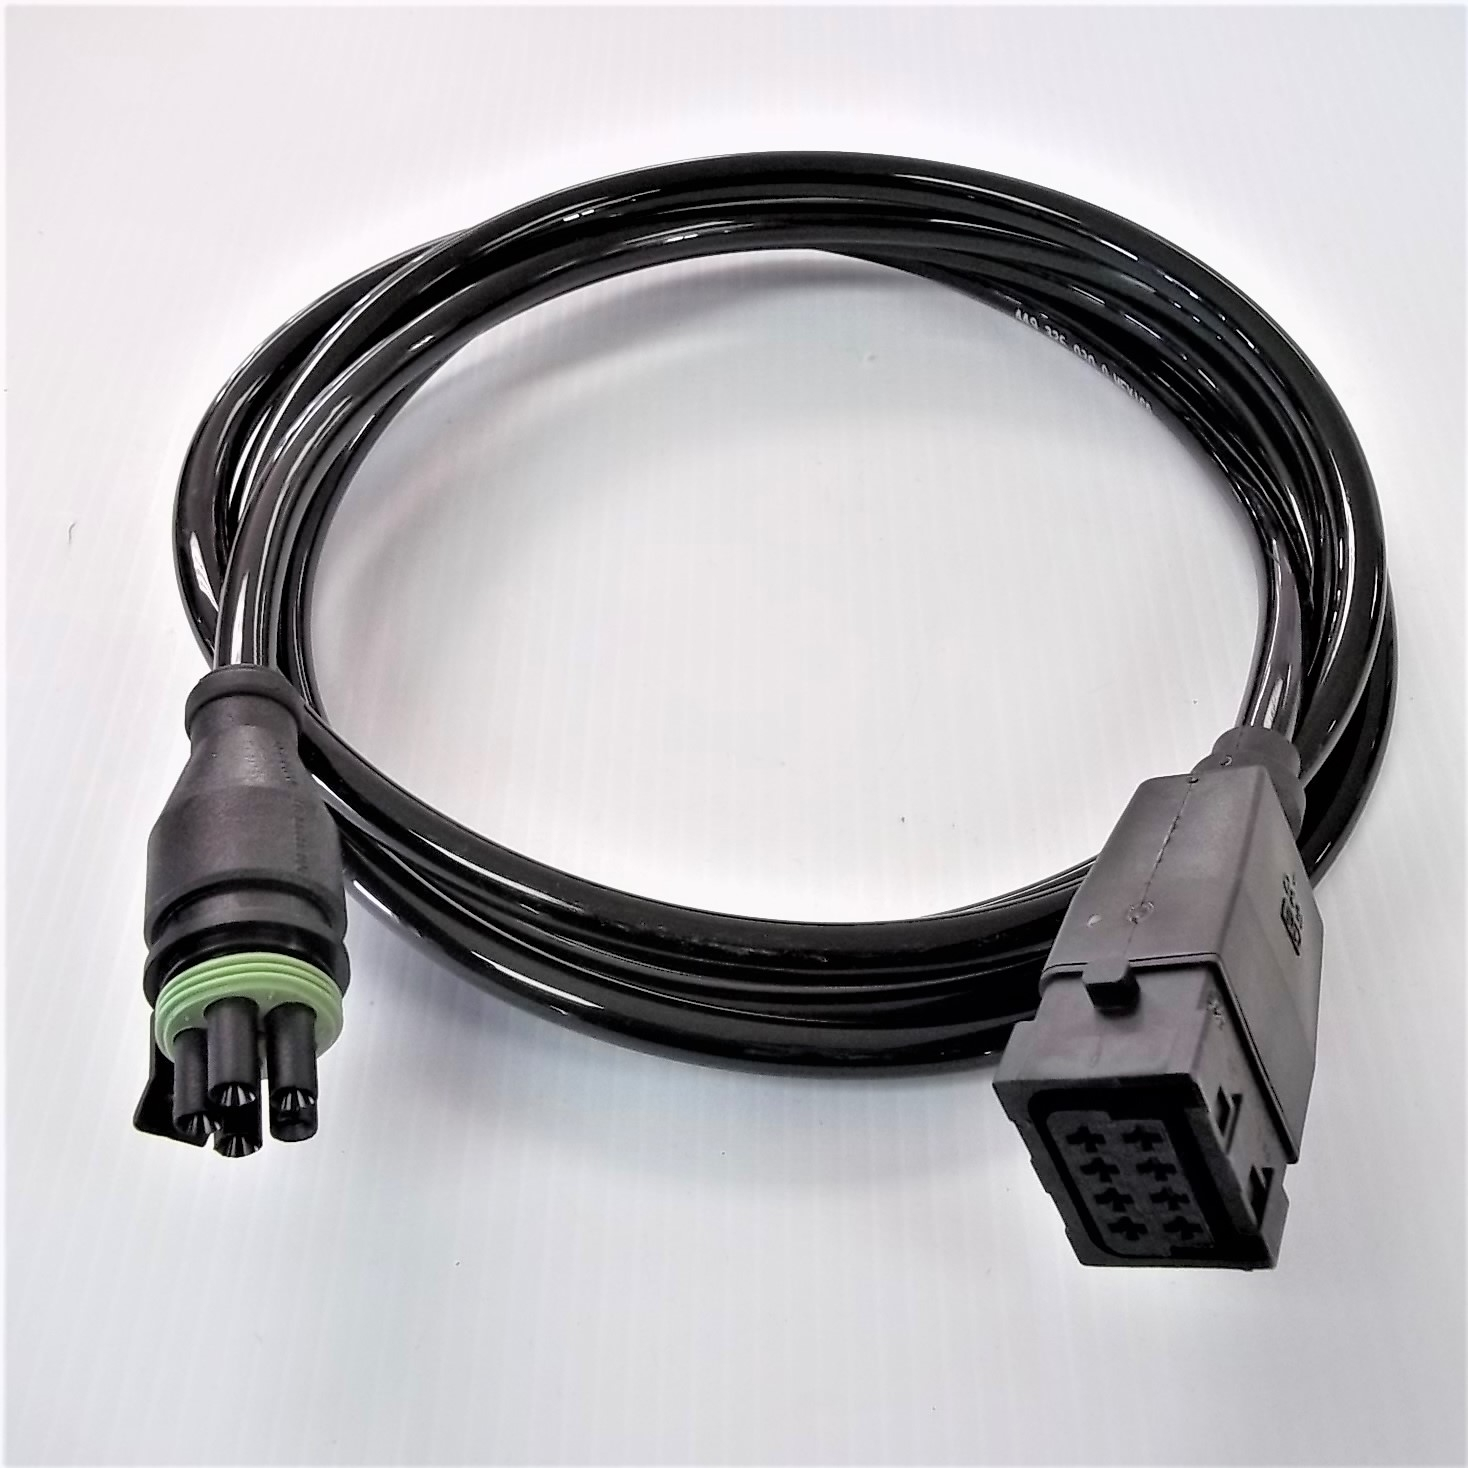 Meritor Easy Stop Enhanced Power Cable 3.0M/10.0′ S449-326-030-0